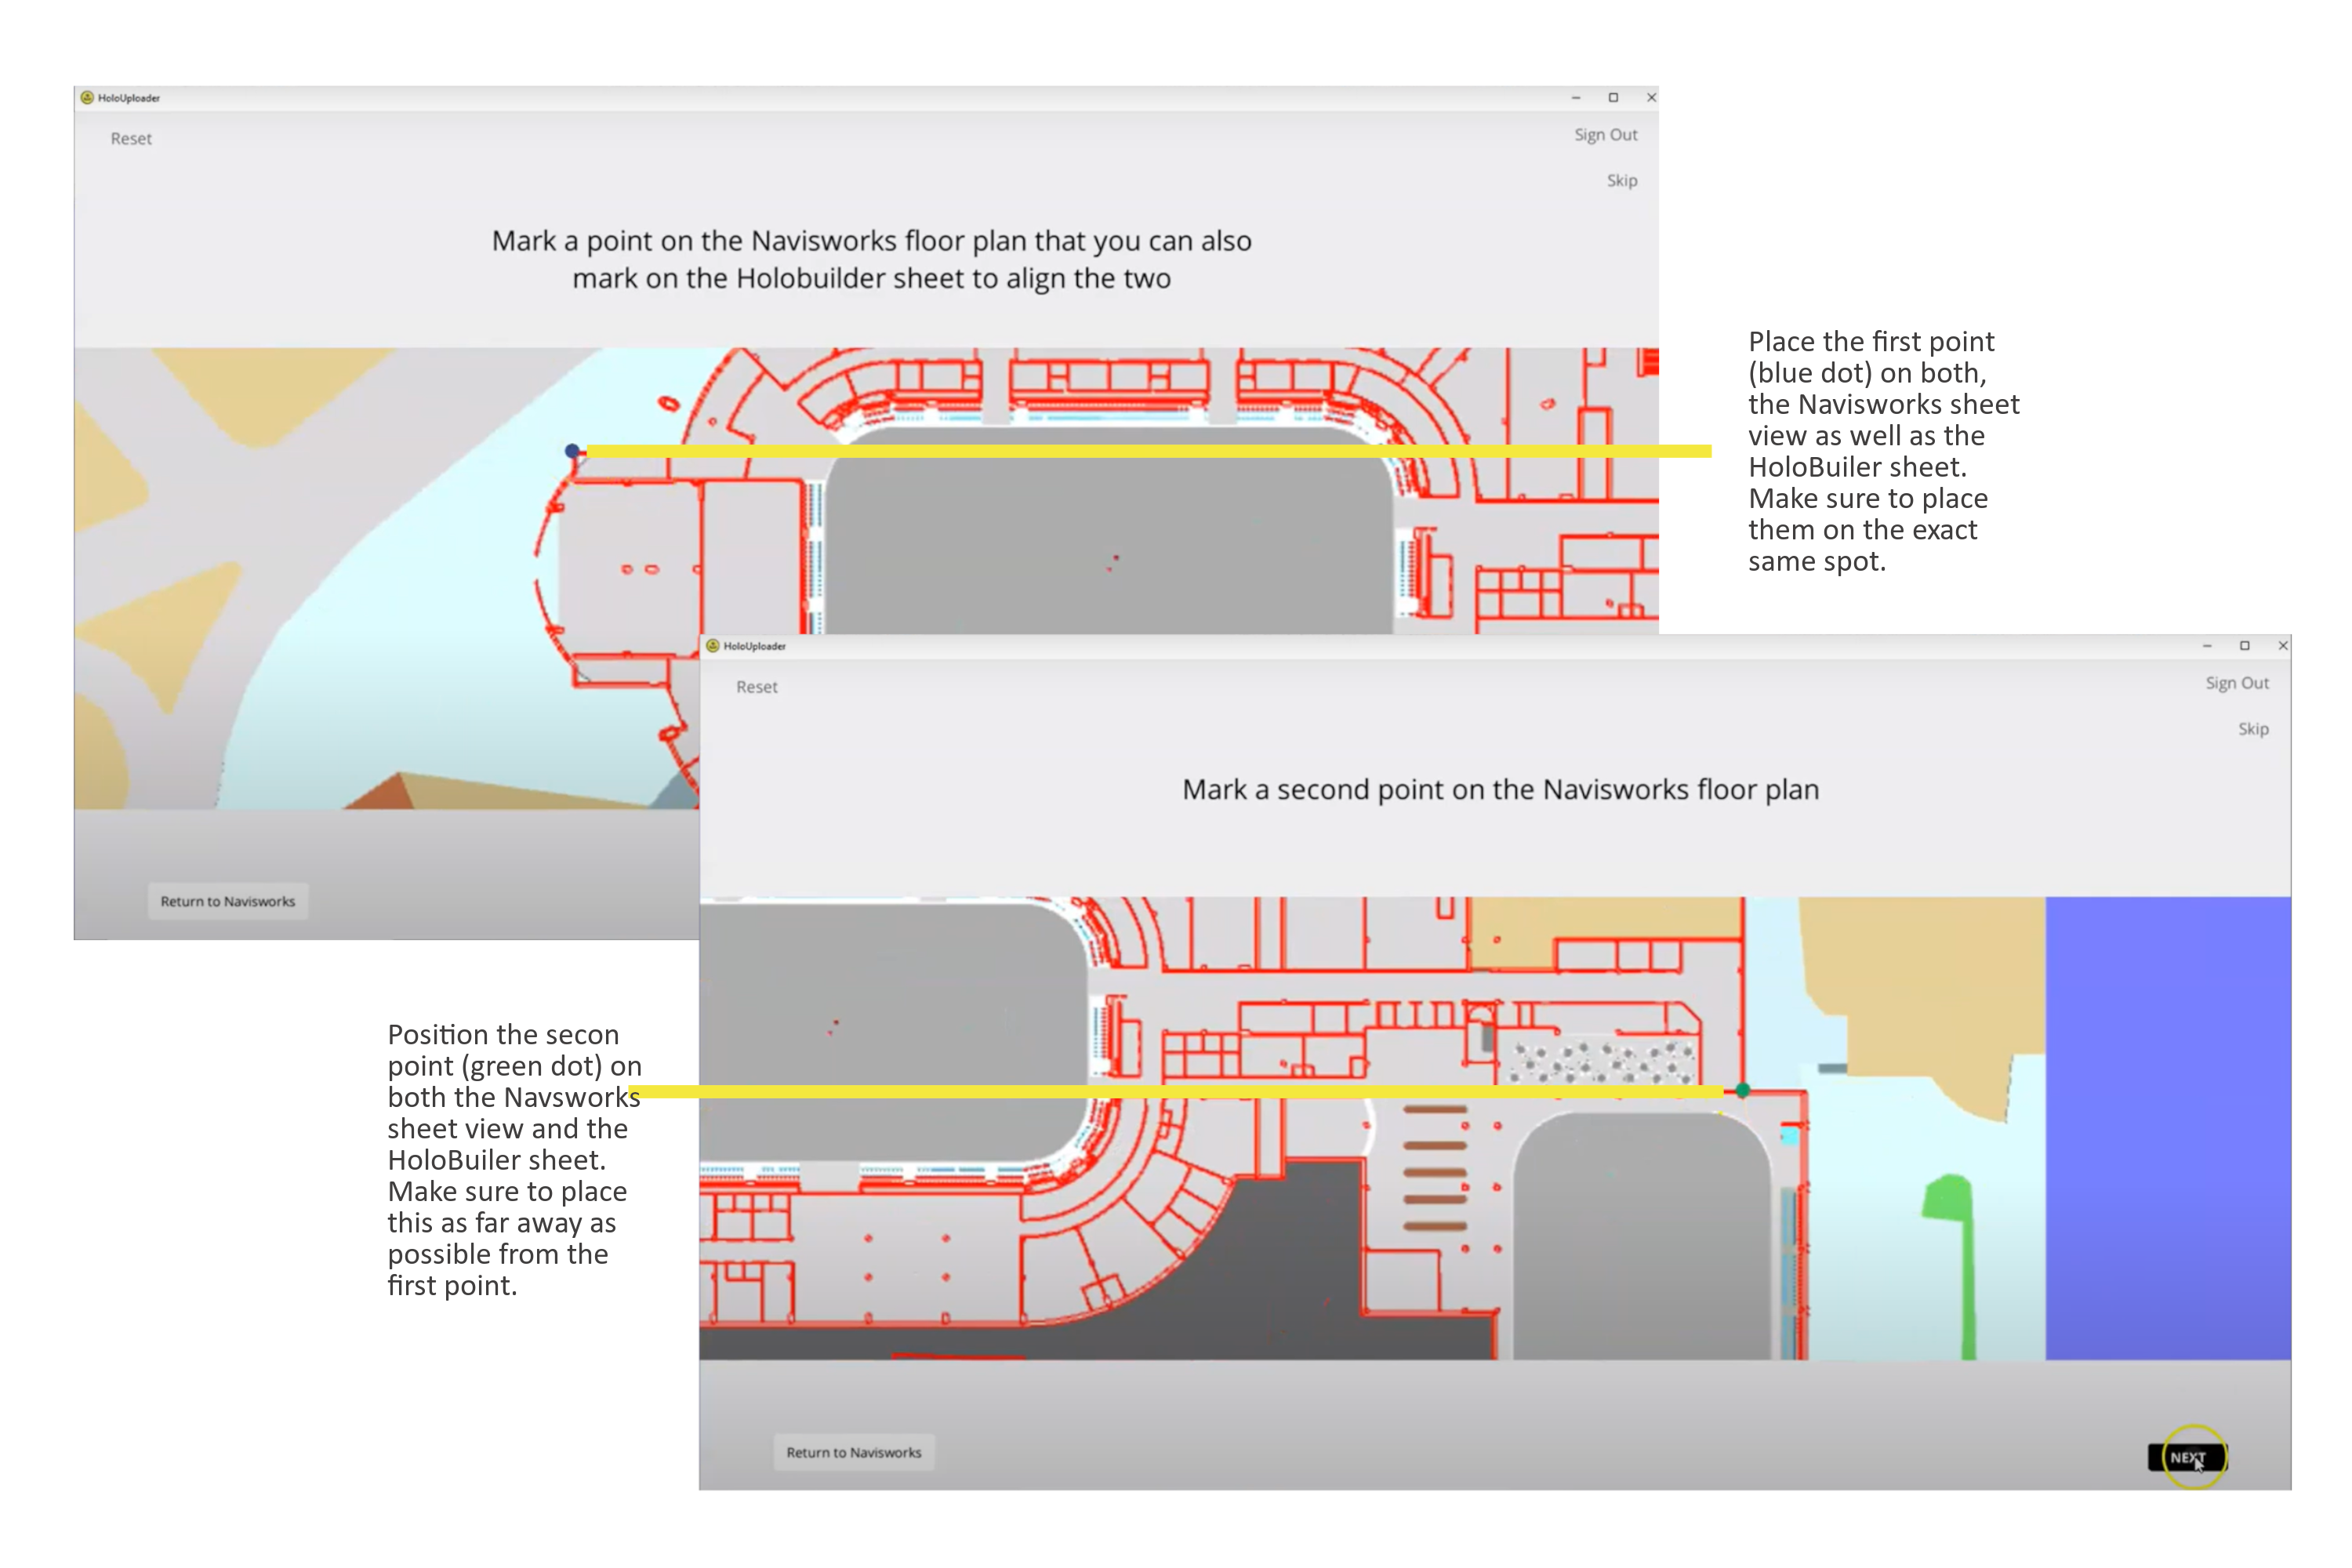 Place the 2 points for aligning the Navisworks sheet view with the HoloBuilder sheet